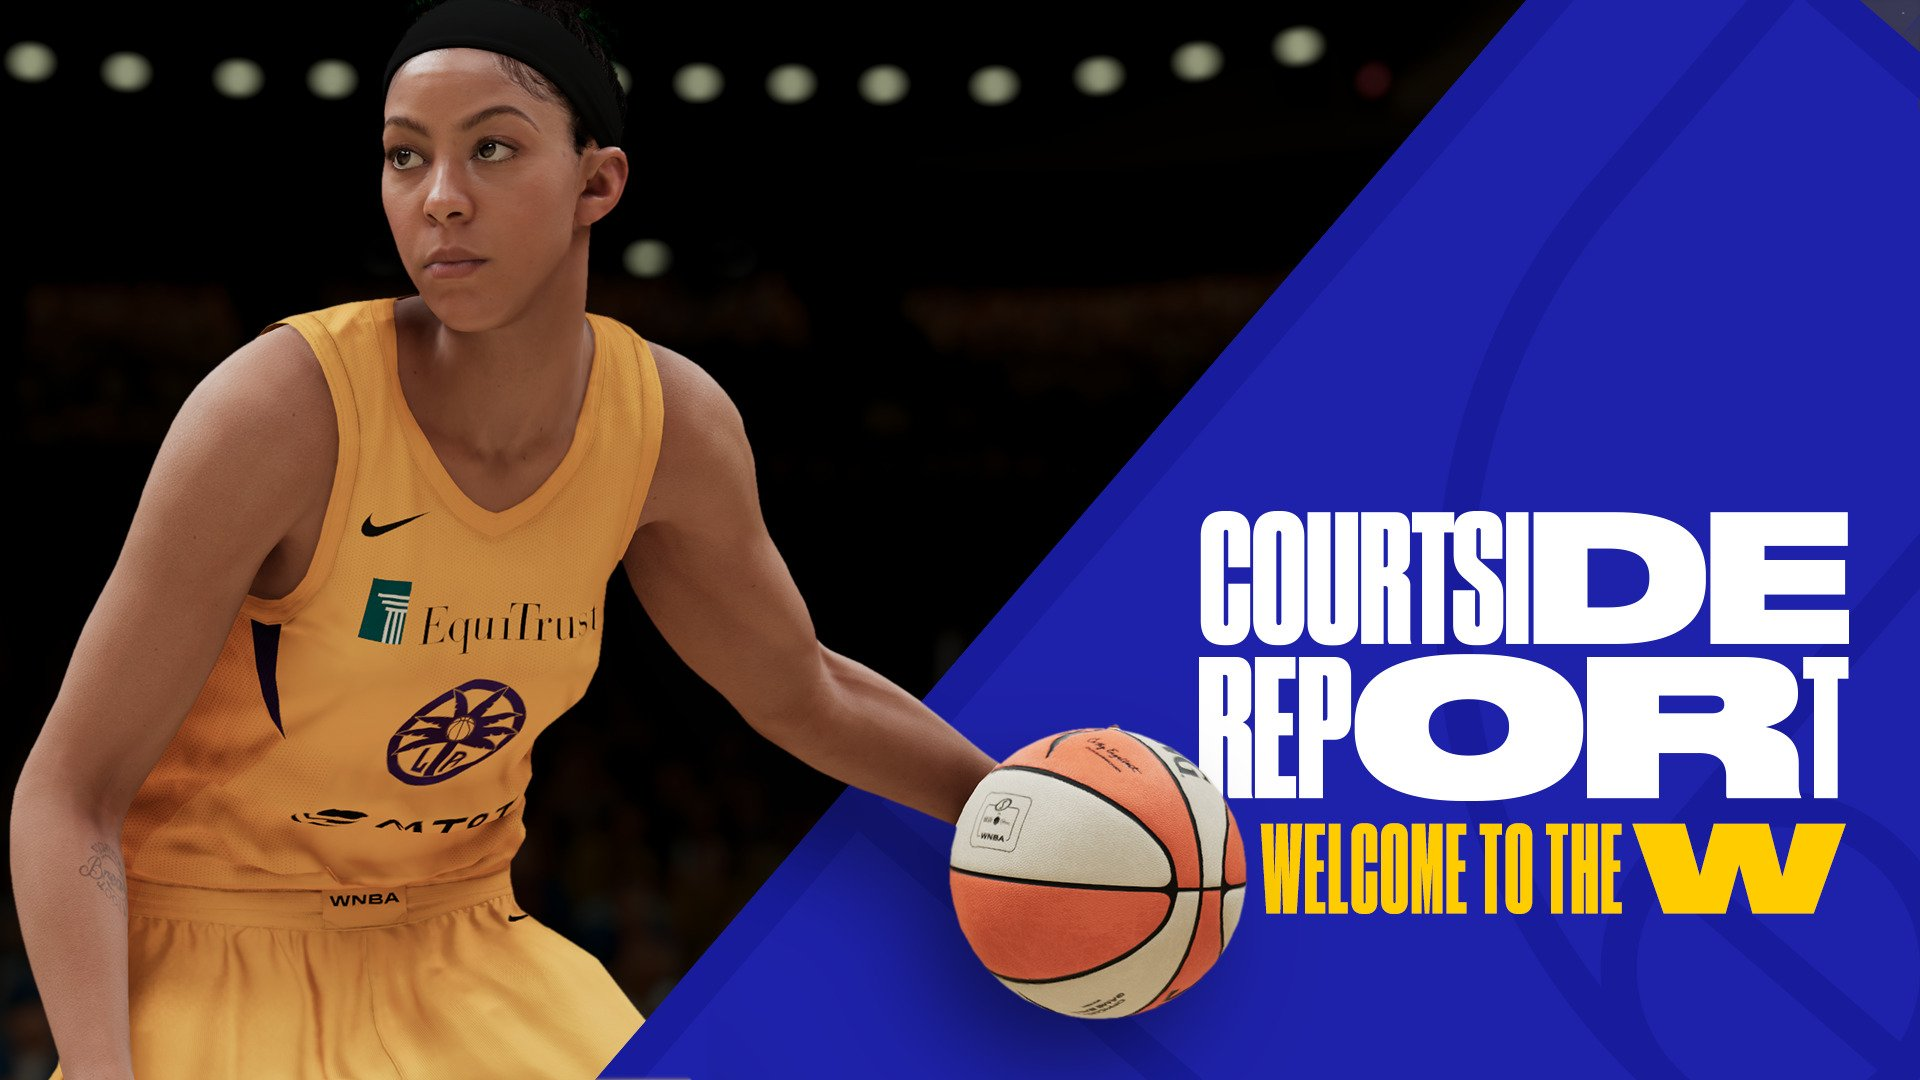 """NBA 2K21"" next-gen MyWNBA and The W Revealed - A WNBA MyCareer mode"